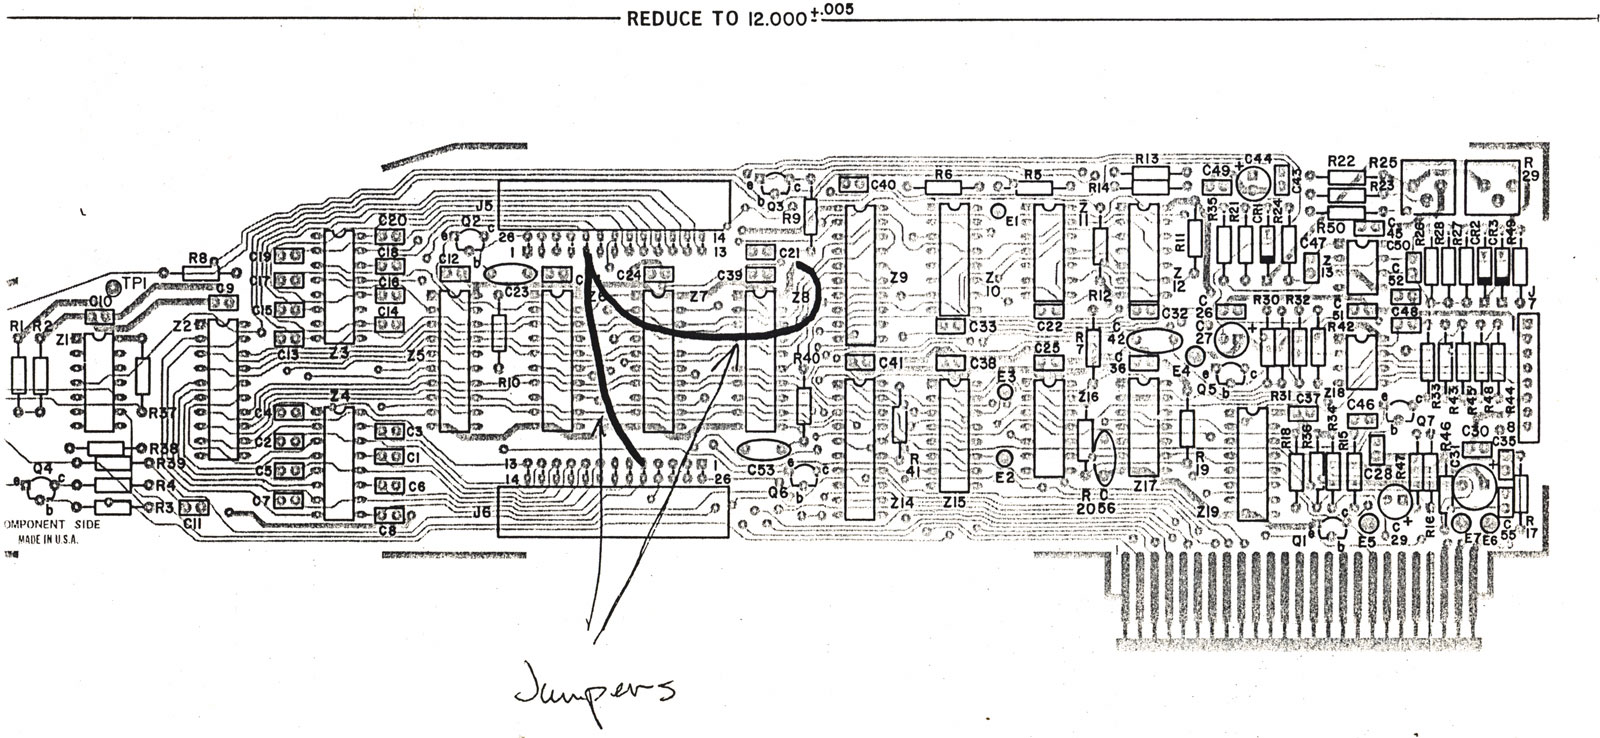 Fender Rhodes Wiring Diagram 28 Images Champ Diagrams Fenderapplecard Chroma Syntech Cult Midi Retrofit Manual At